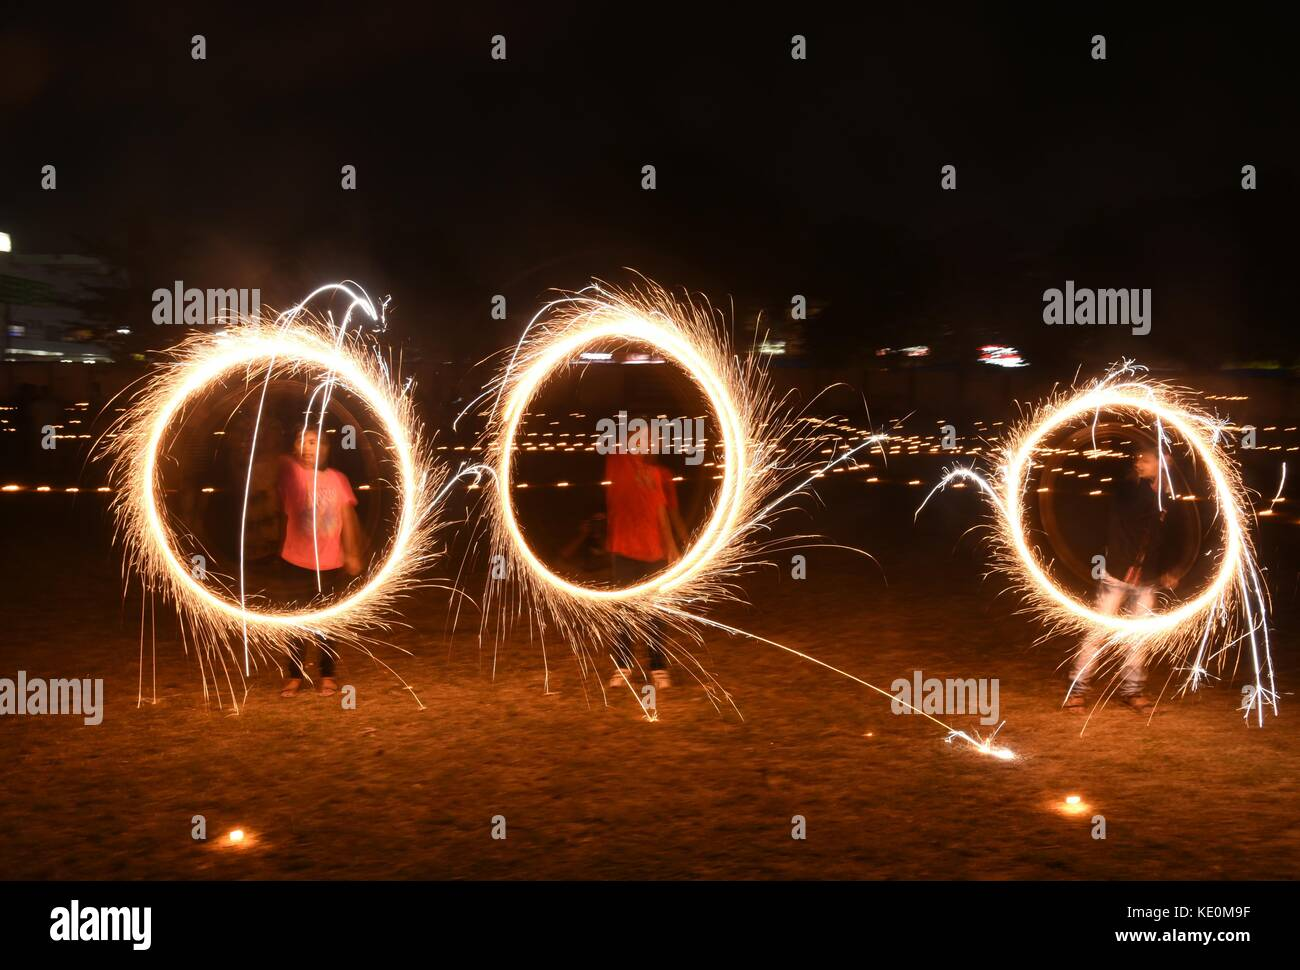 Allahabad, Uttar Pradesh, India. 17th Oct, 2017. Allahabad: Children fire sparkle cracker at Anglo Bangali stadium - Stock Image